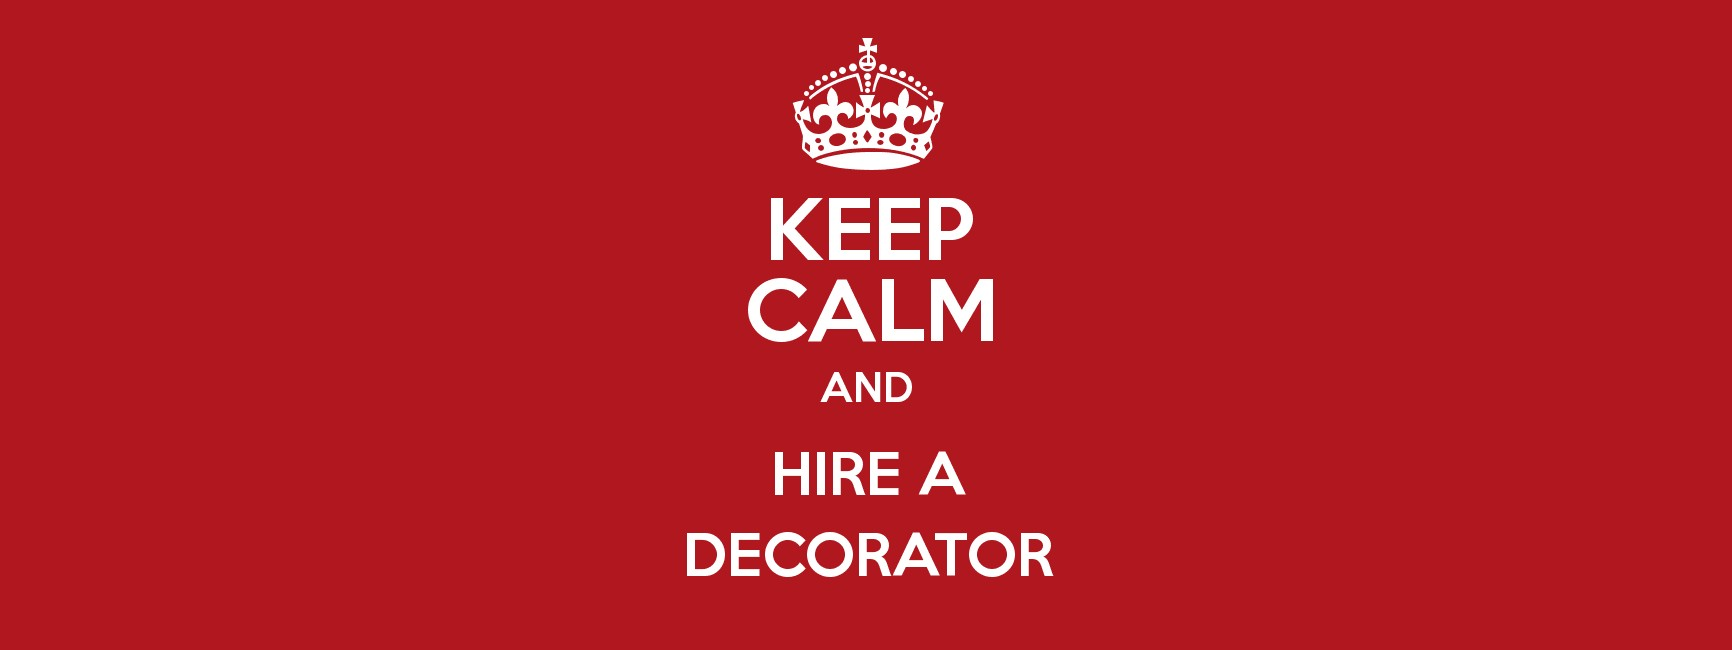 KEEP CALM AND HIRE A DECORATOR Poster